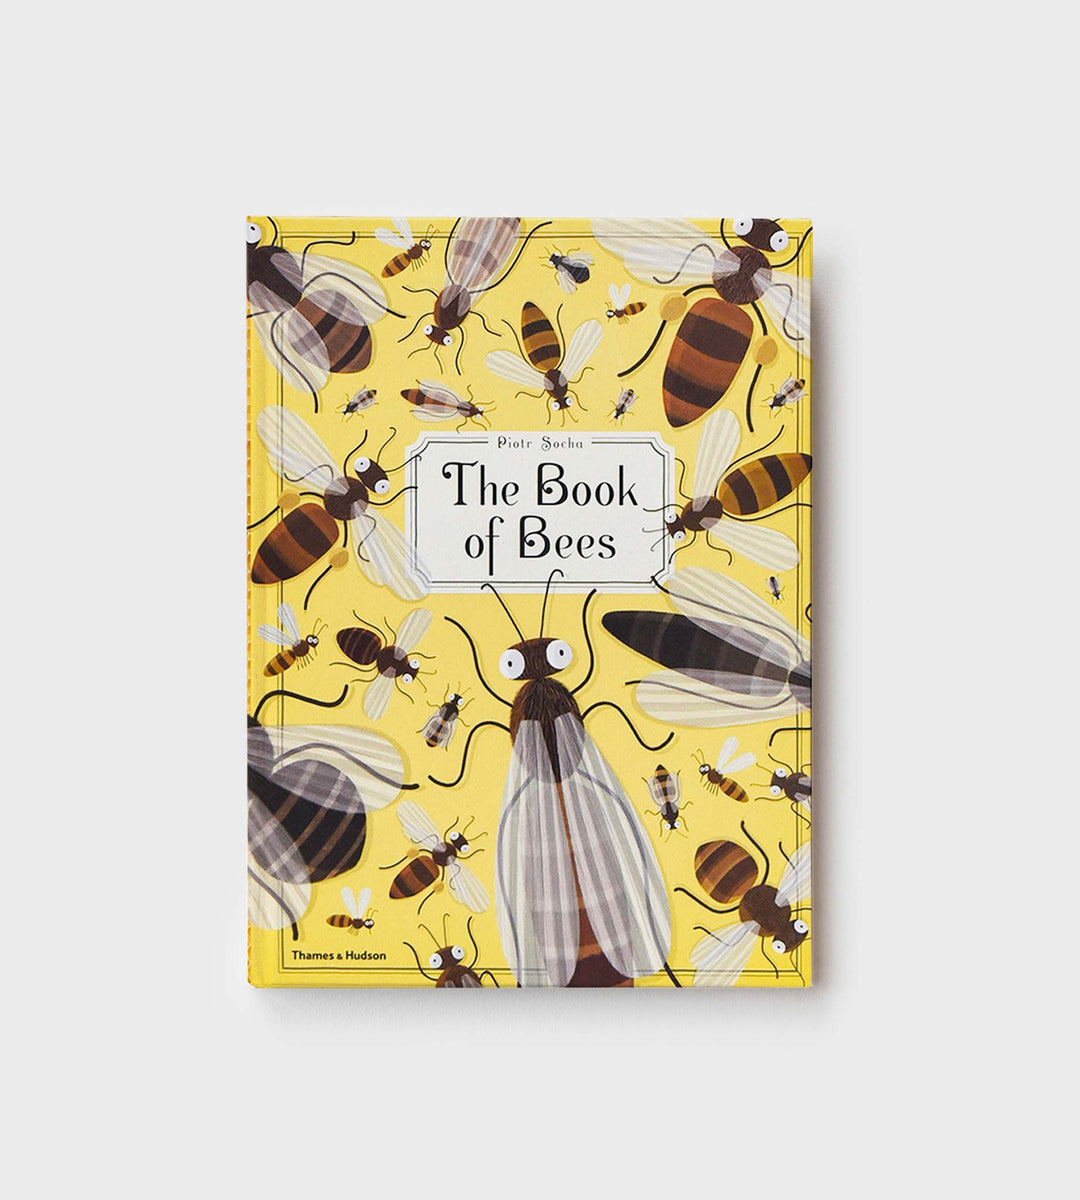 The Book of Bees | by Piotr Socha